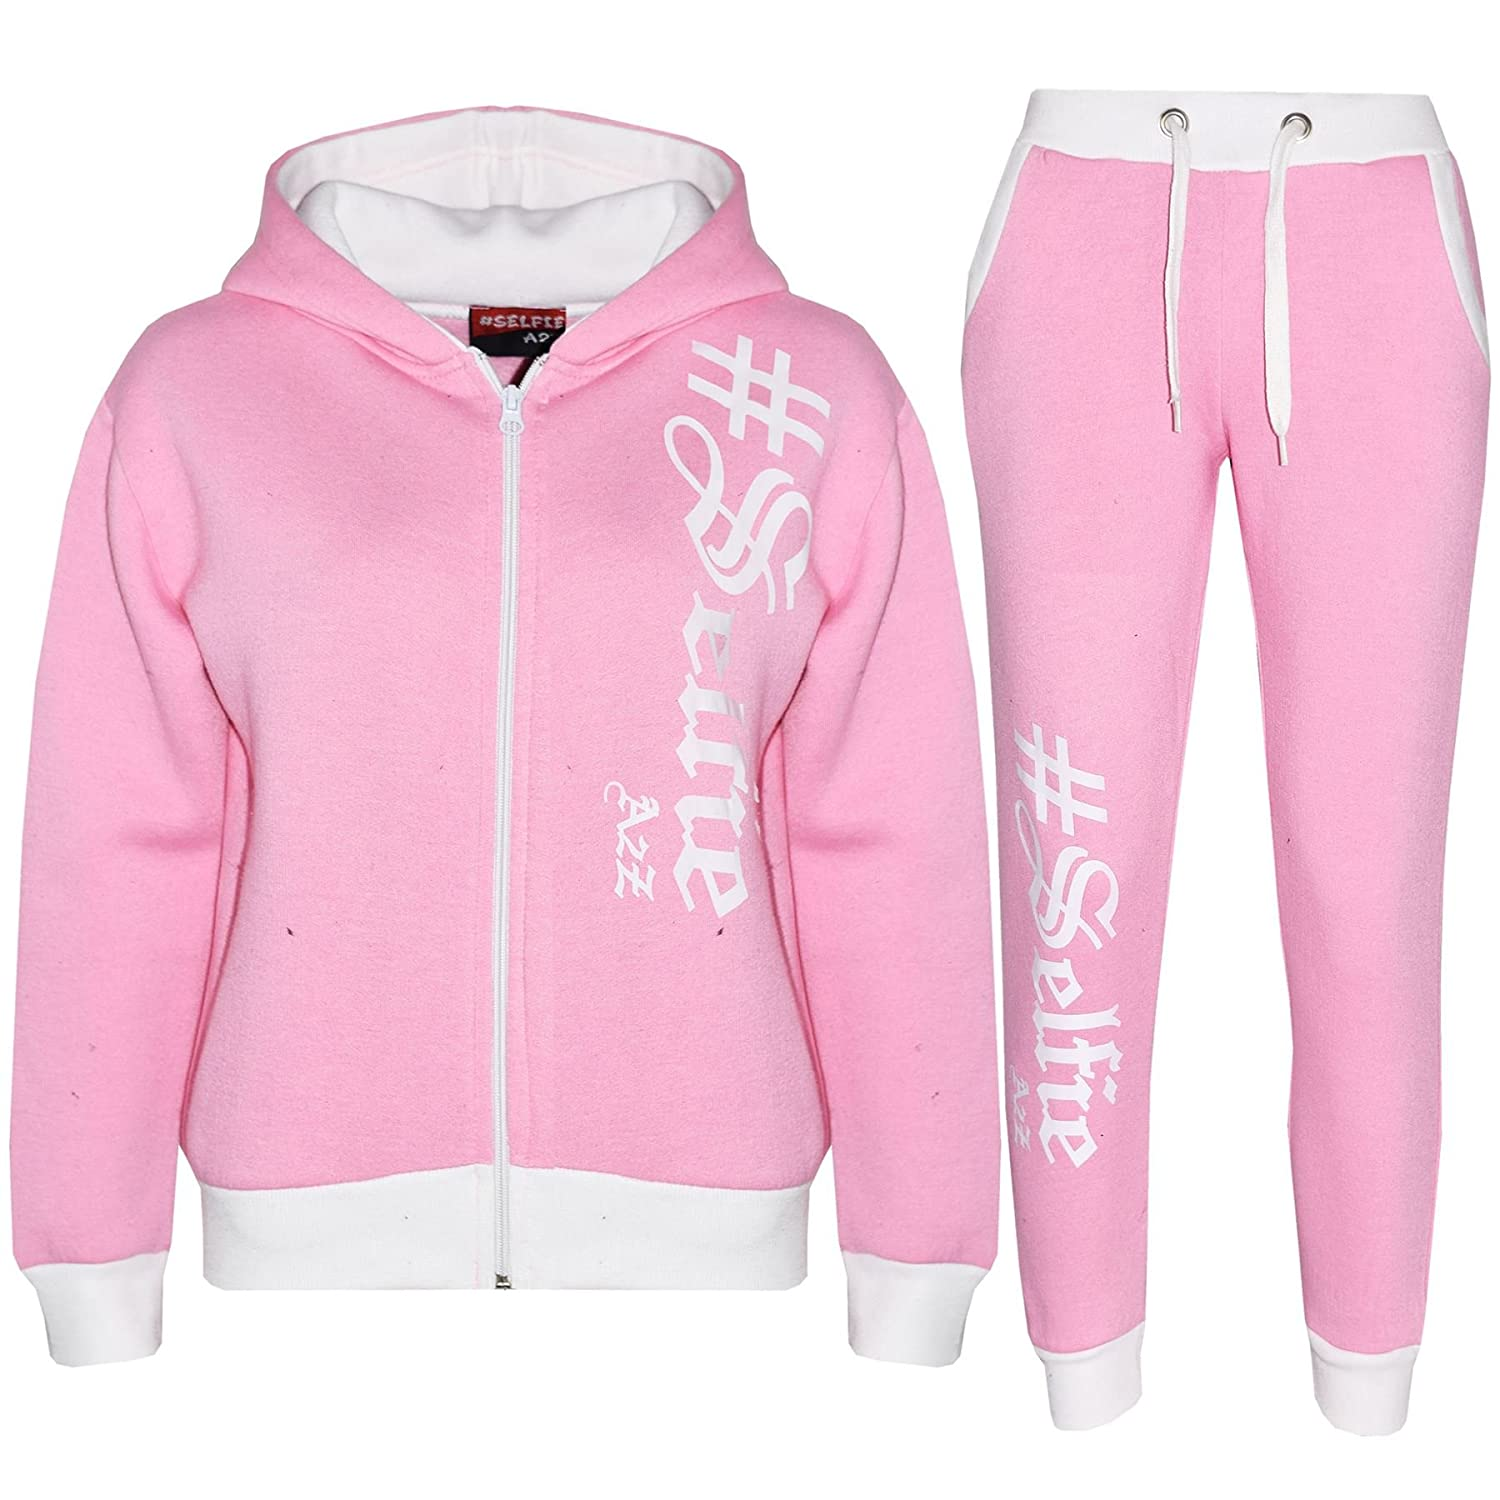 A2Z 4 Kids® Kids Tracksuit Boys Girls Designer's #Selfie Print Zipped Top Hoodie & Botom Jogging Suit Joggers Age 5 6 7 8 9 10 11 12 13 Years